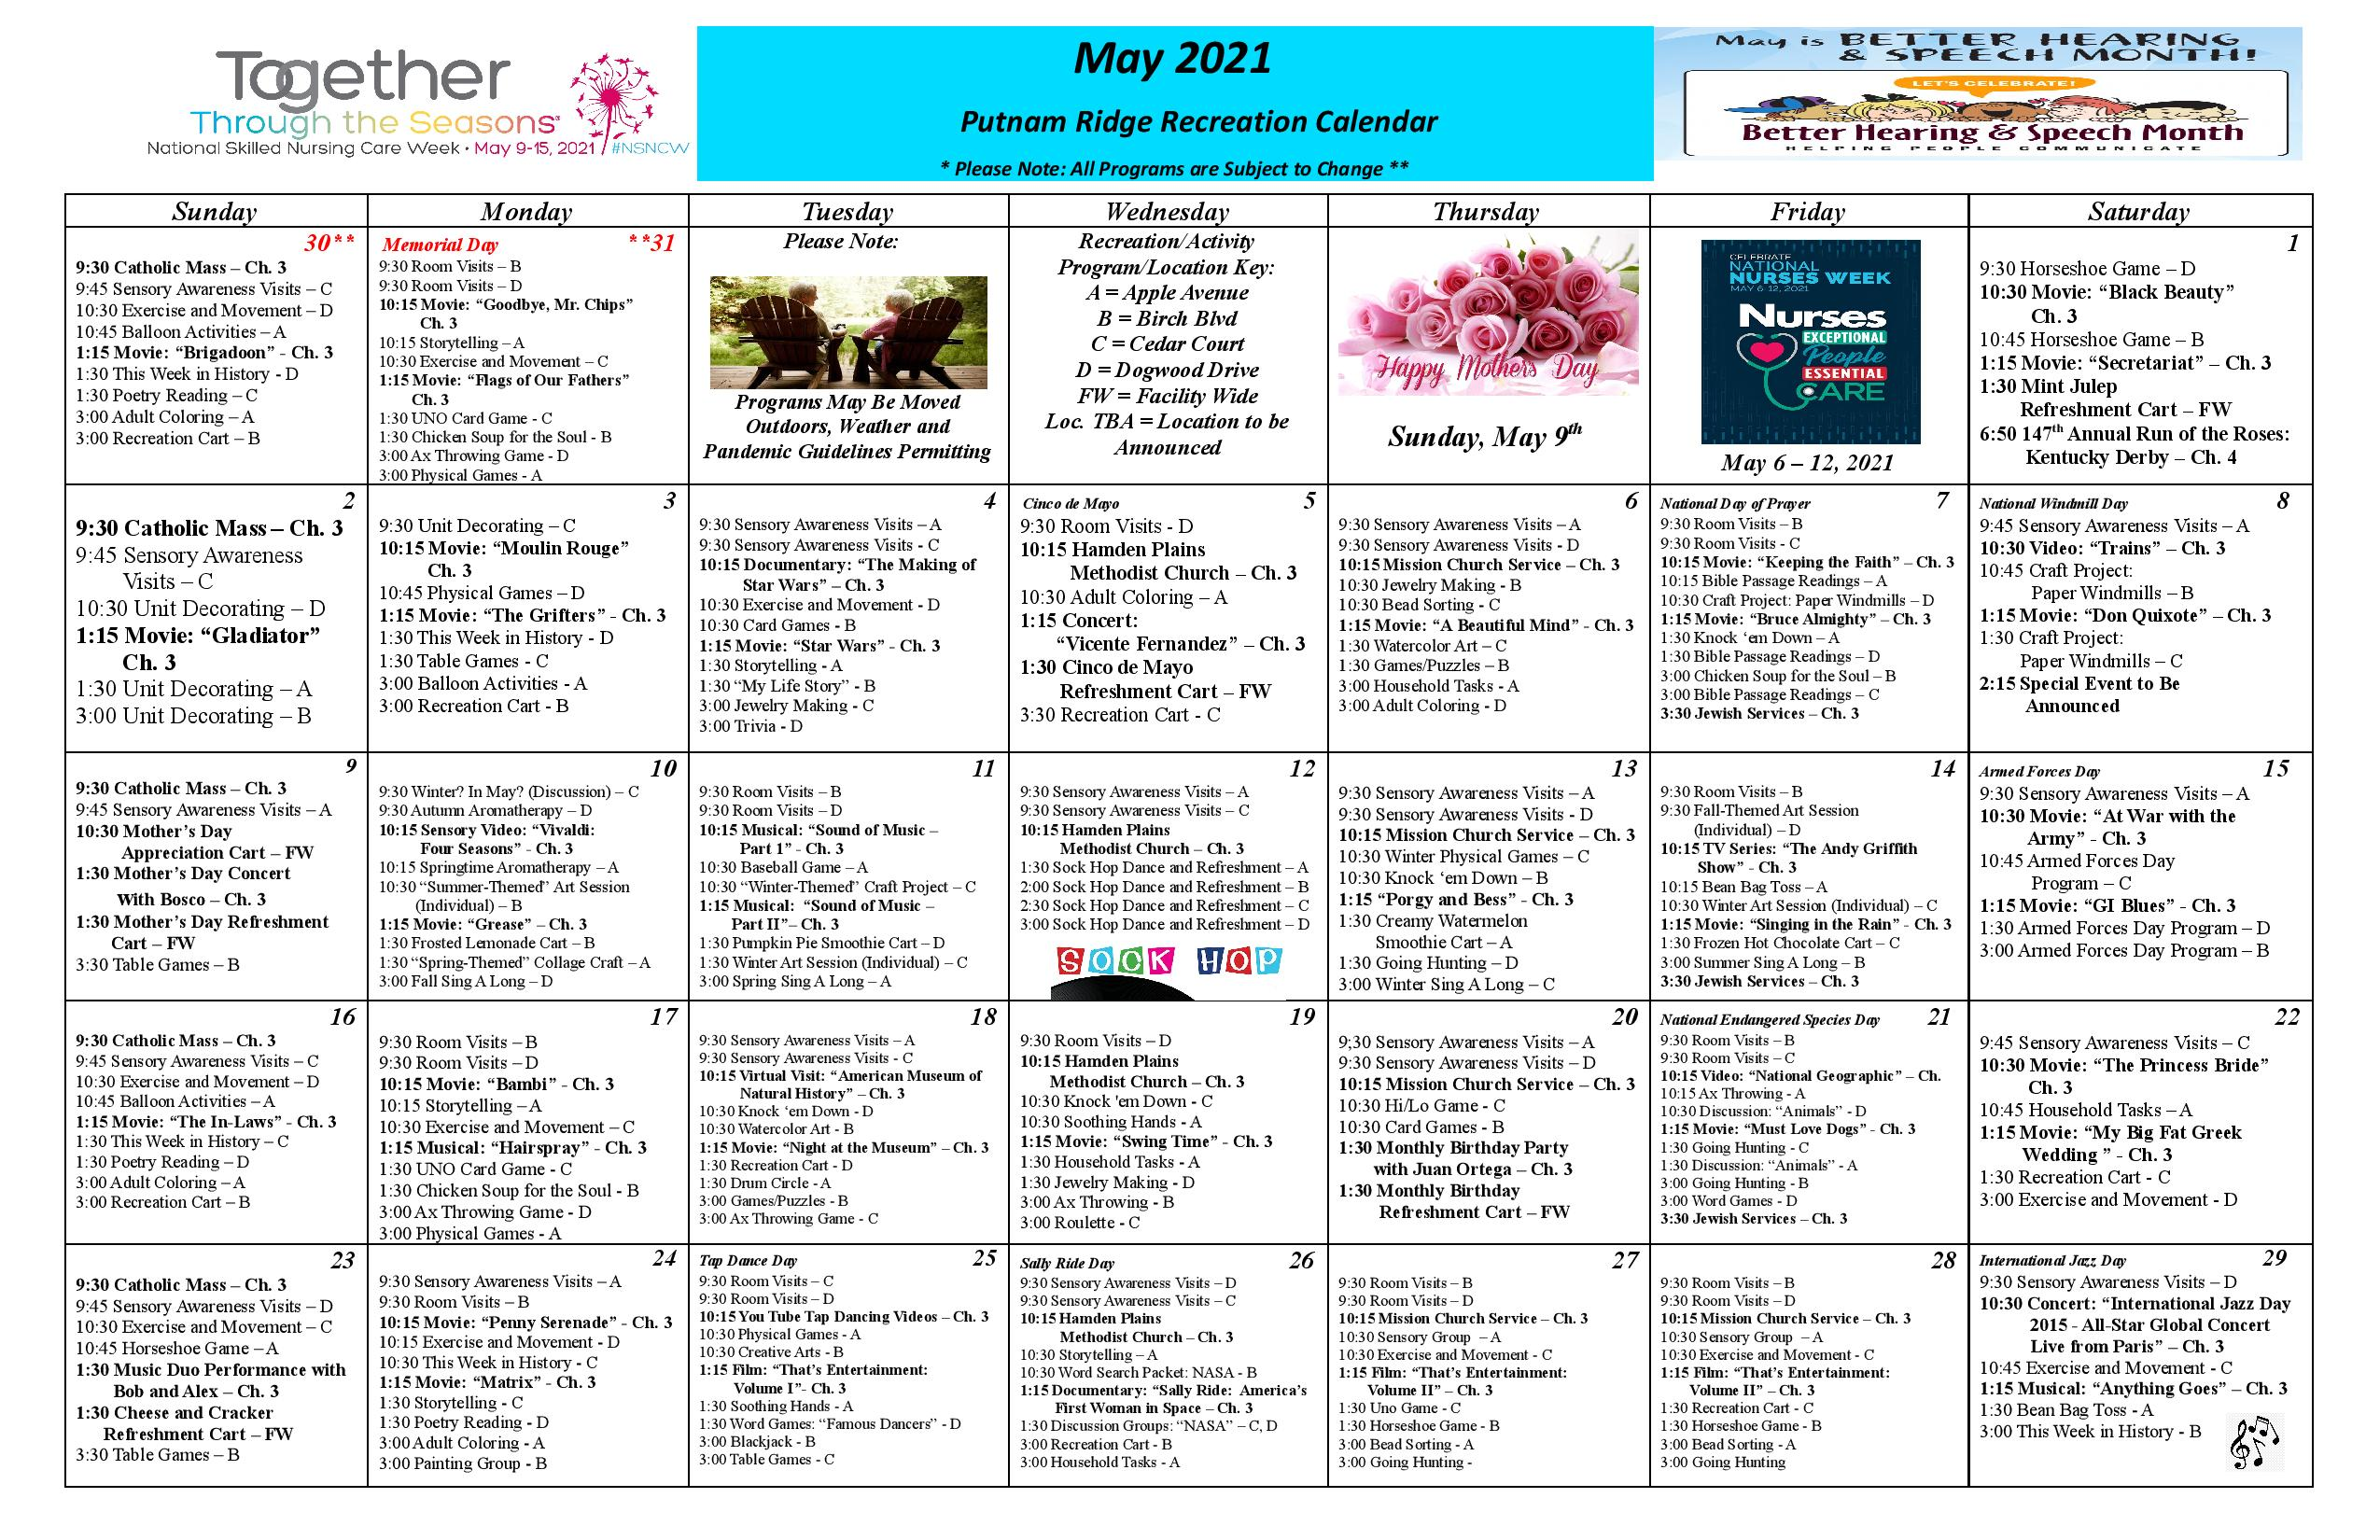 Read/Download Our May Activities Calendar Link